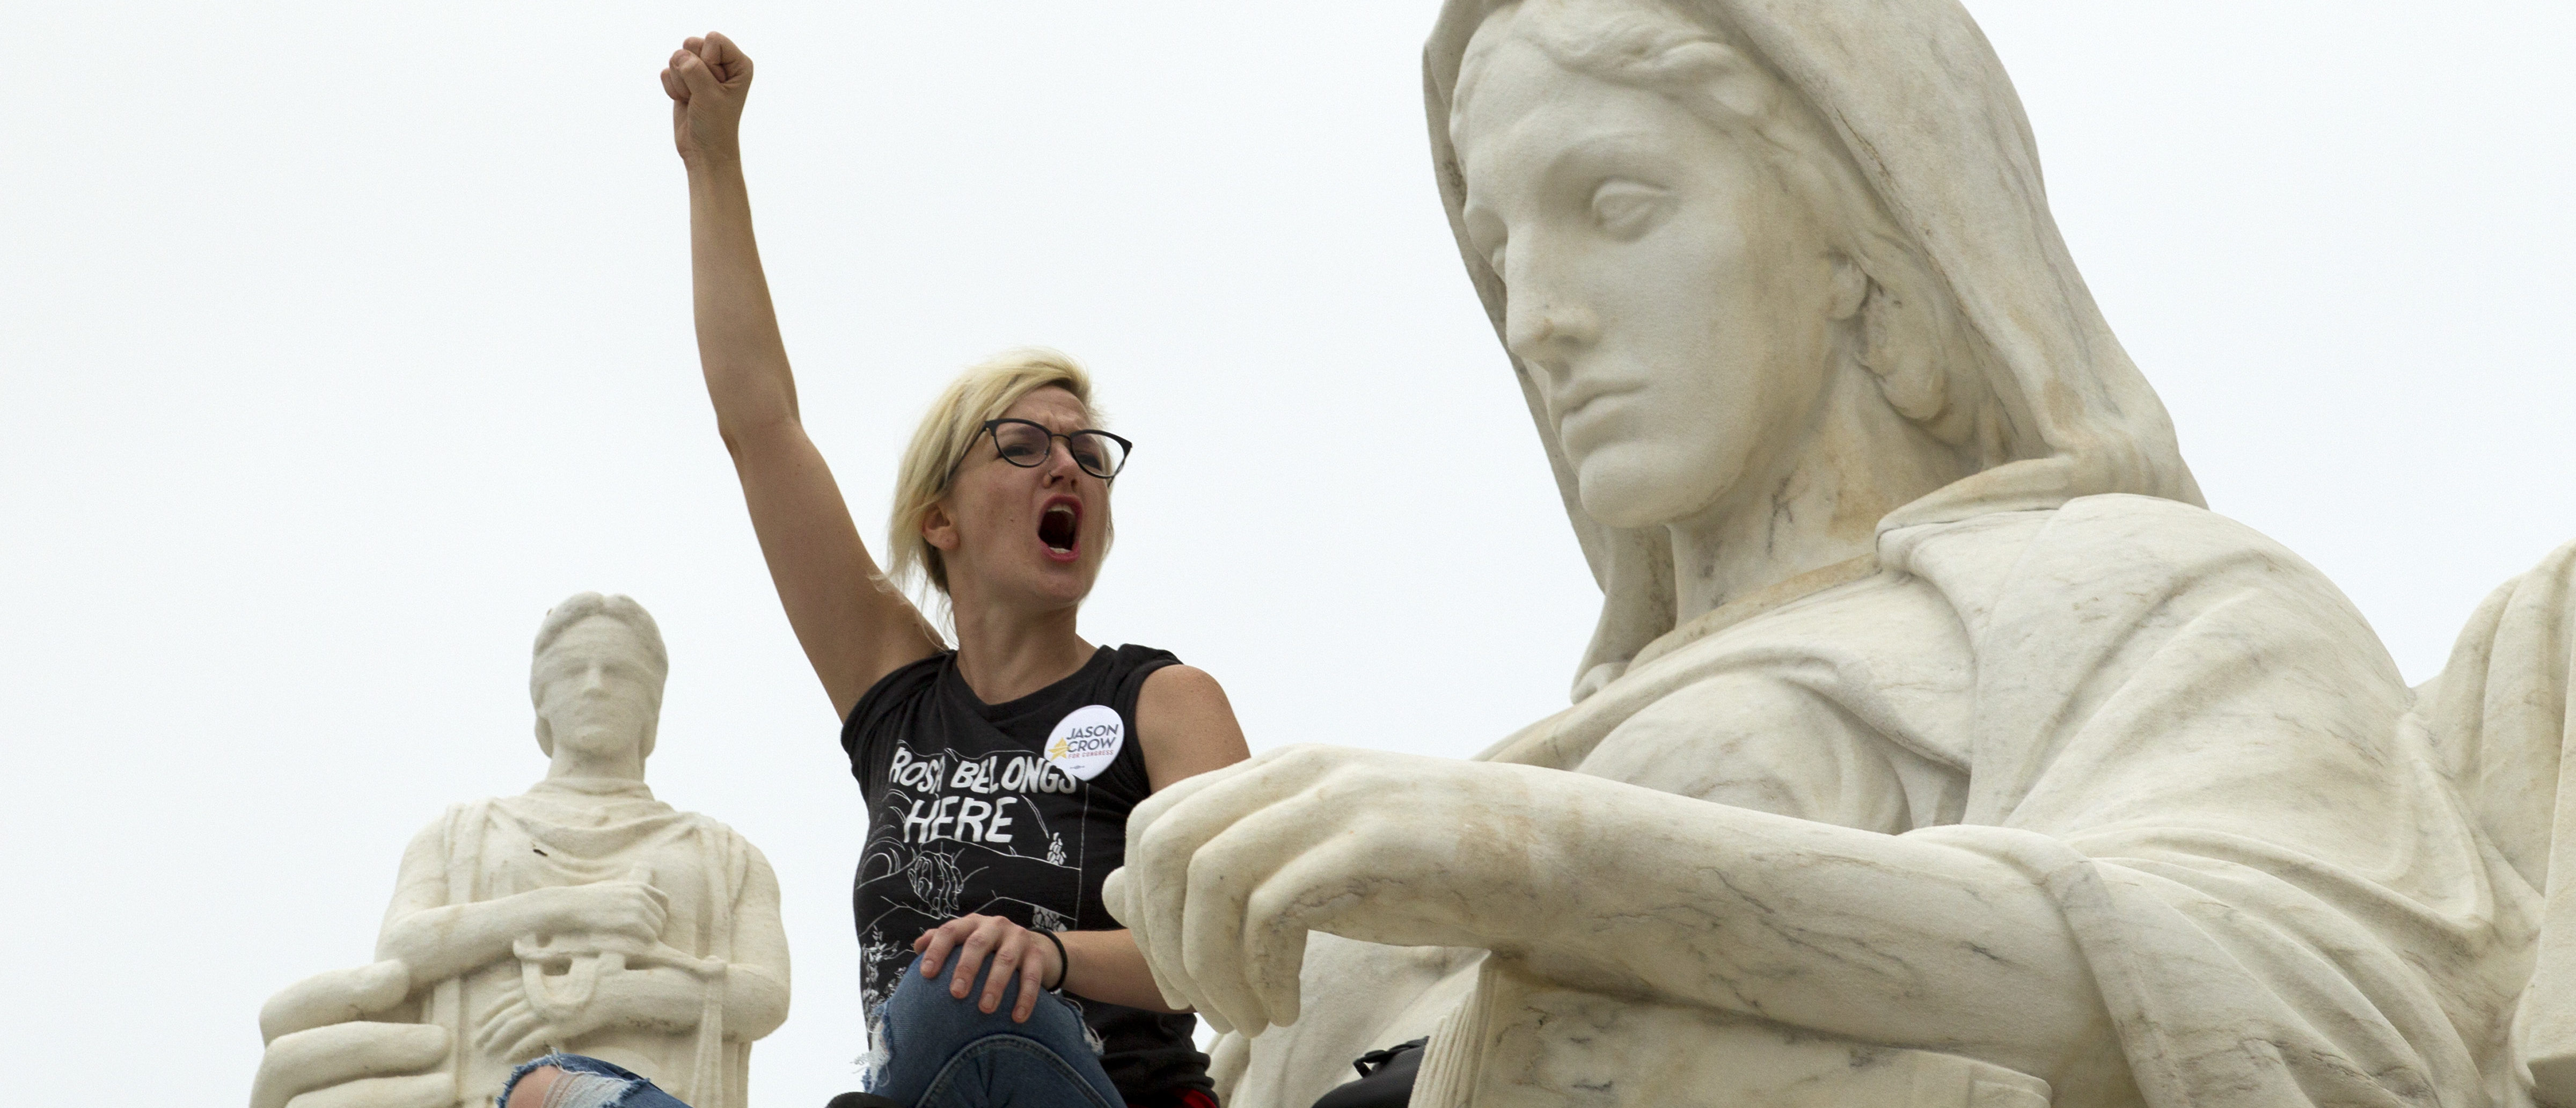 """TOPSHOT - Demonstrator Jessica Campbell-Swanson of Denver, stands on the lap of the """"Contemplation of Justice"""" statue as protestors take the steps of the US Supreme Court protesting against the appointment of Supreme Court nominee Brett Kavanaugh at Capitol Hill in Washington DC, on October 6, 2018. (Photo by Jose Luis Magana / AFP) (Photo credit should read JOSE LUIS MAGANA/AFP/Getty Images)"""